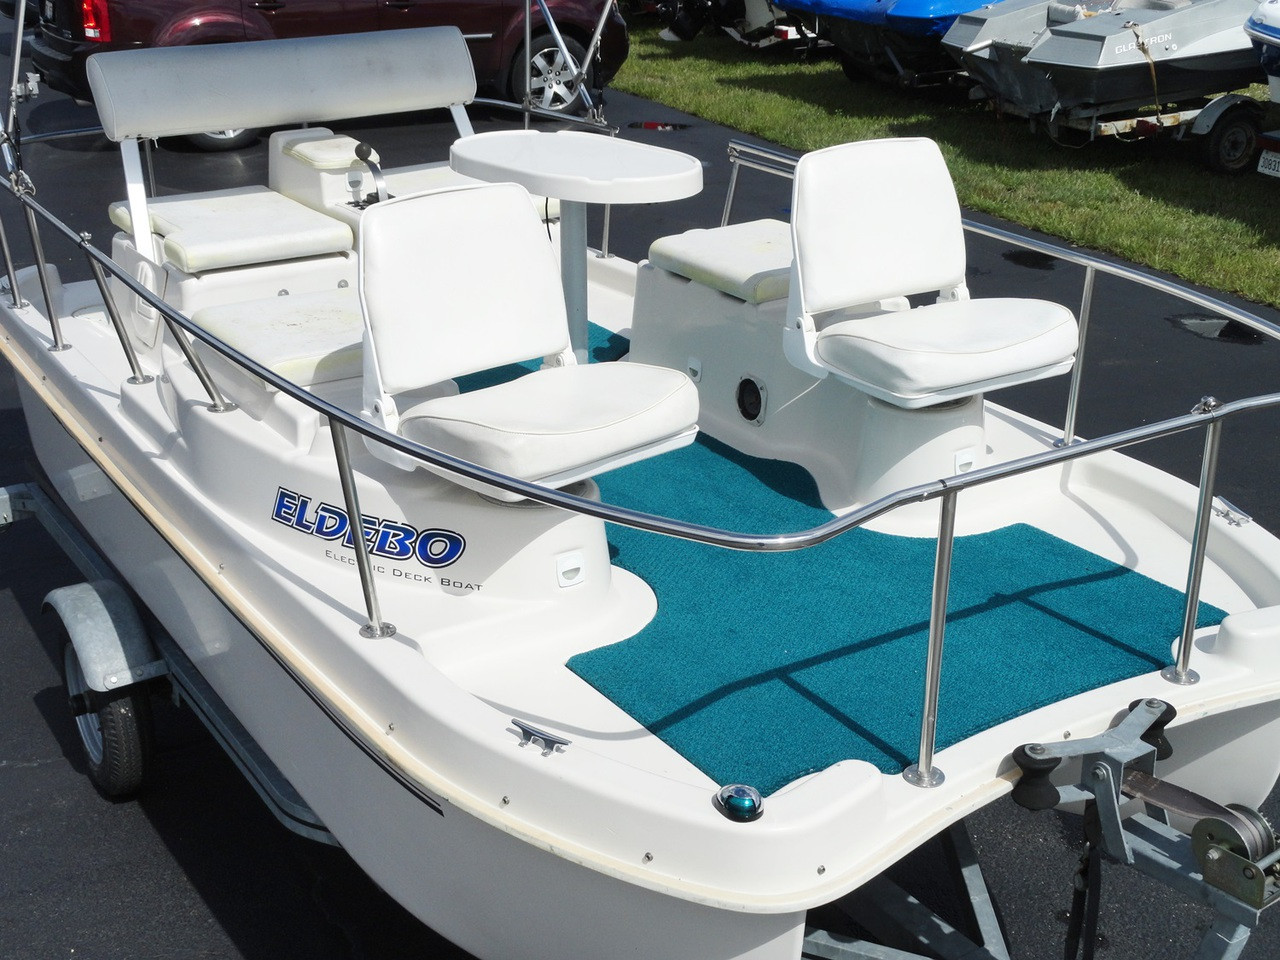 Used eldebo electric pontoon deck boat 2002 for Electric outboard boat motors reviews